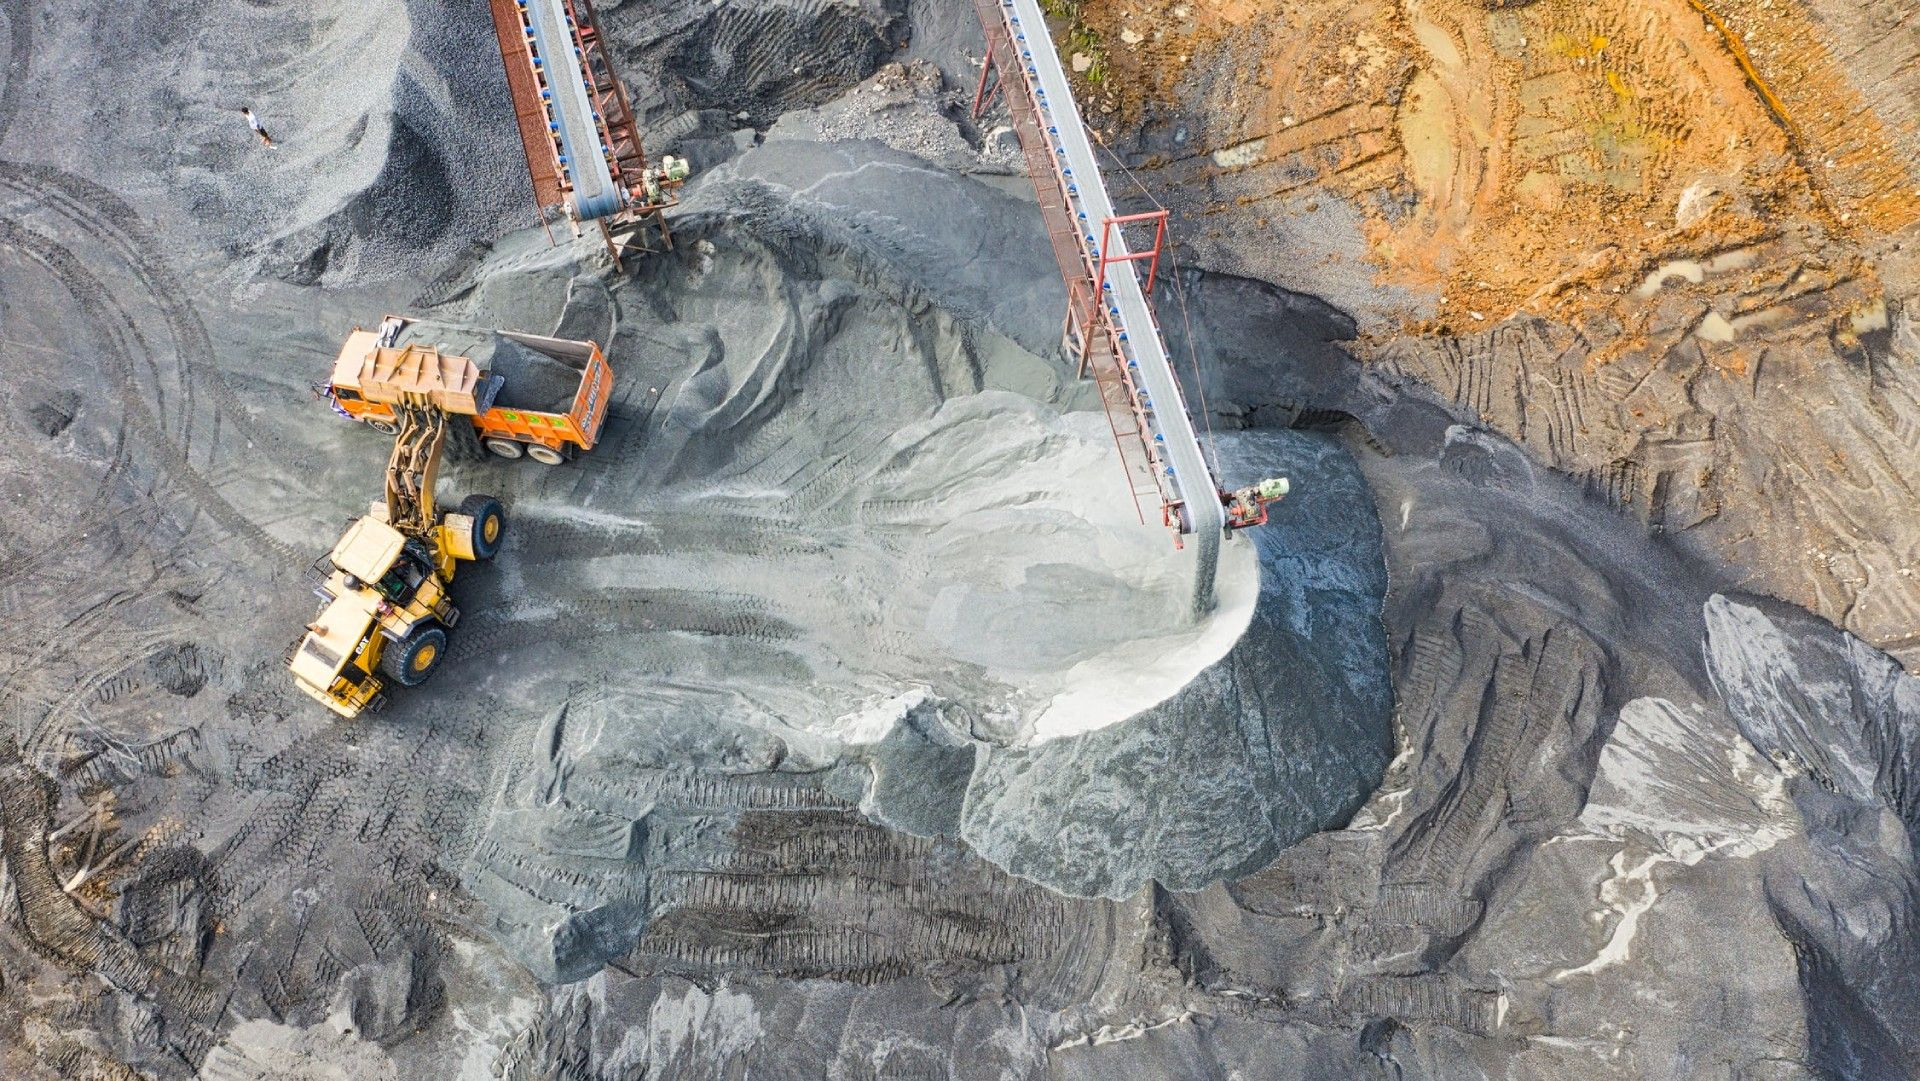 Mining poised to lead in the post pandemic recovery